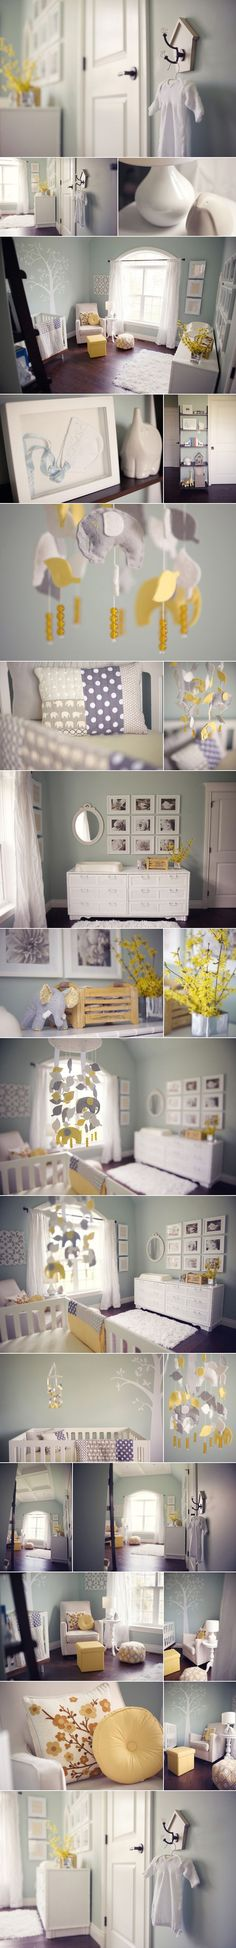 Beautiful Nursery Pictures, Photos, and Images for Facebook, Tumblr, Pinterest, and Twitter